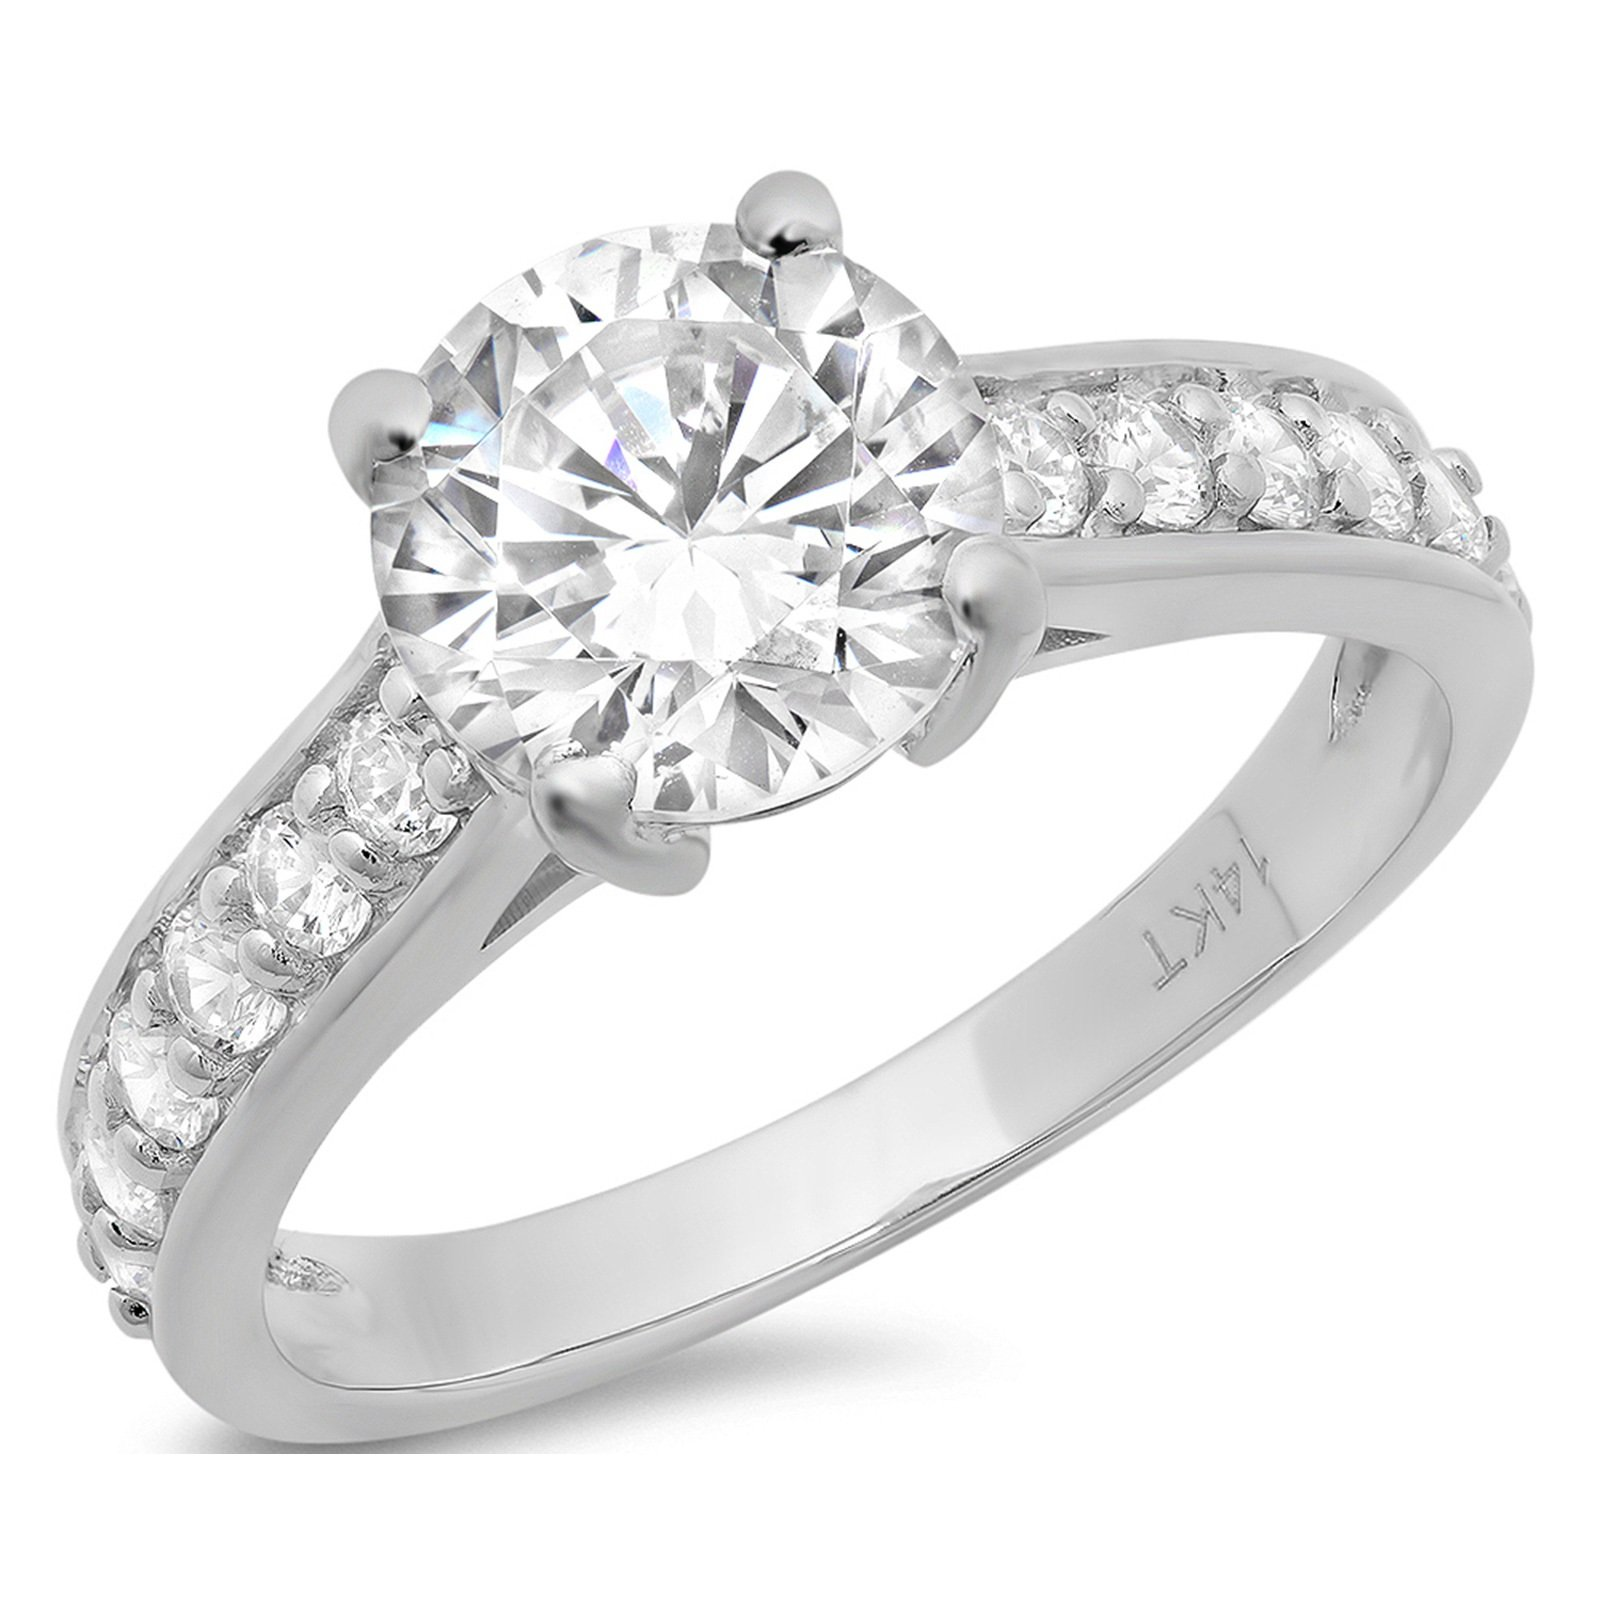 Clara Pucci 2.15 CT Brilliant Round Cut CZ Solitaire Engagement Wedding Ring Accent 14k White Gold, Size 9.5